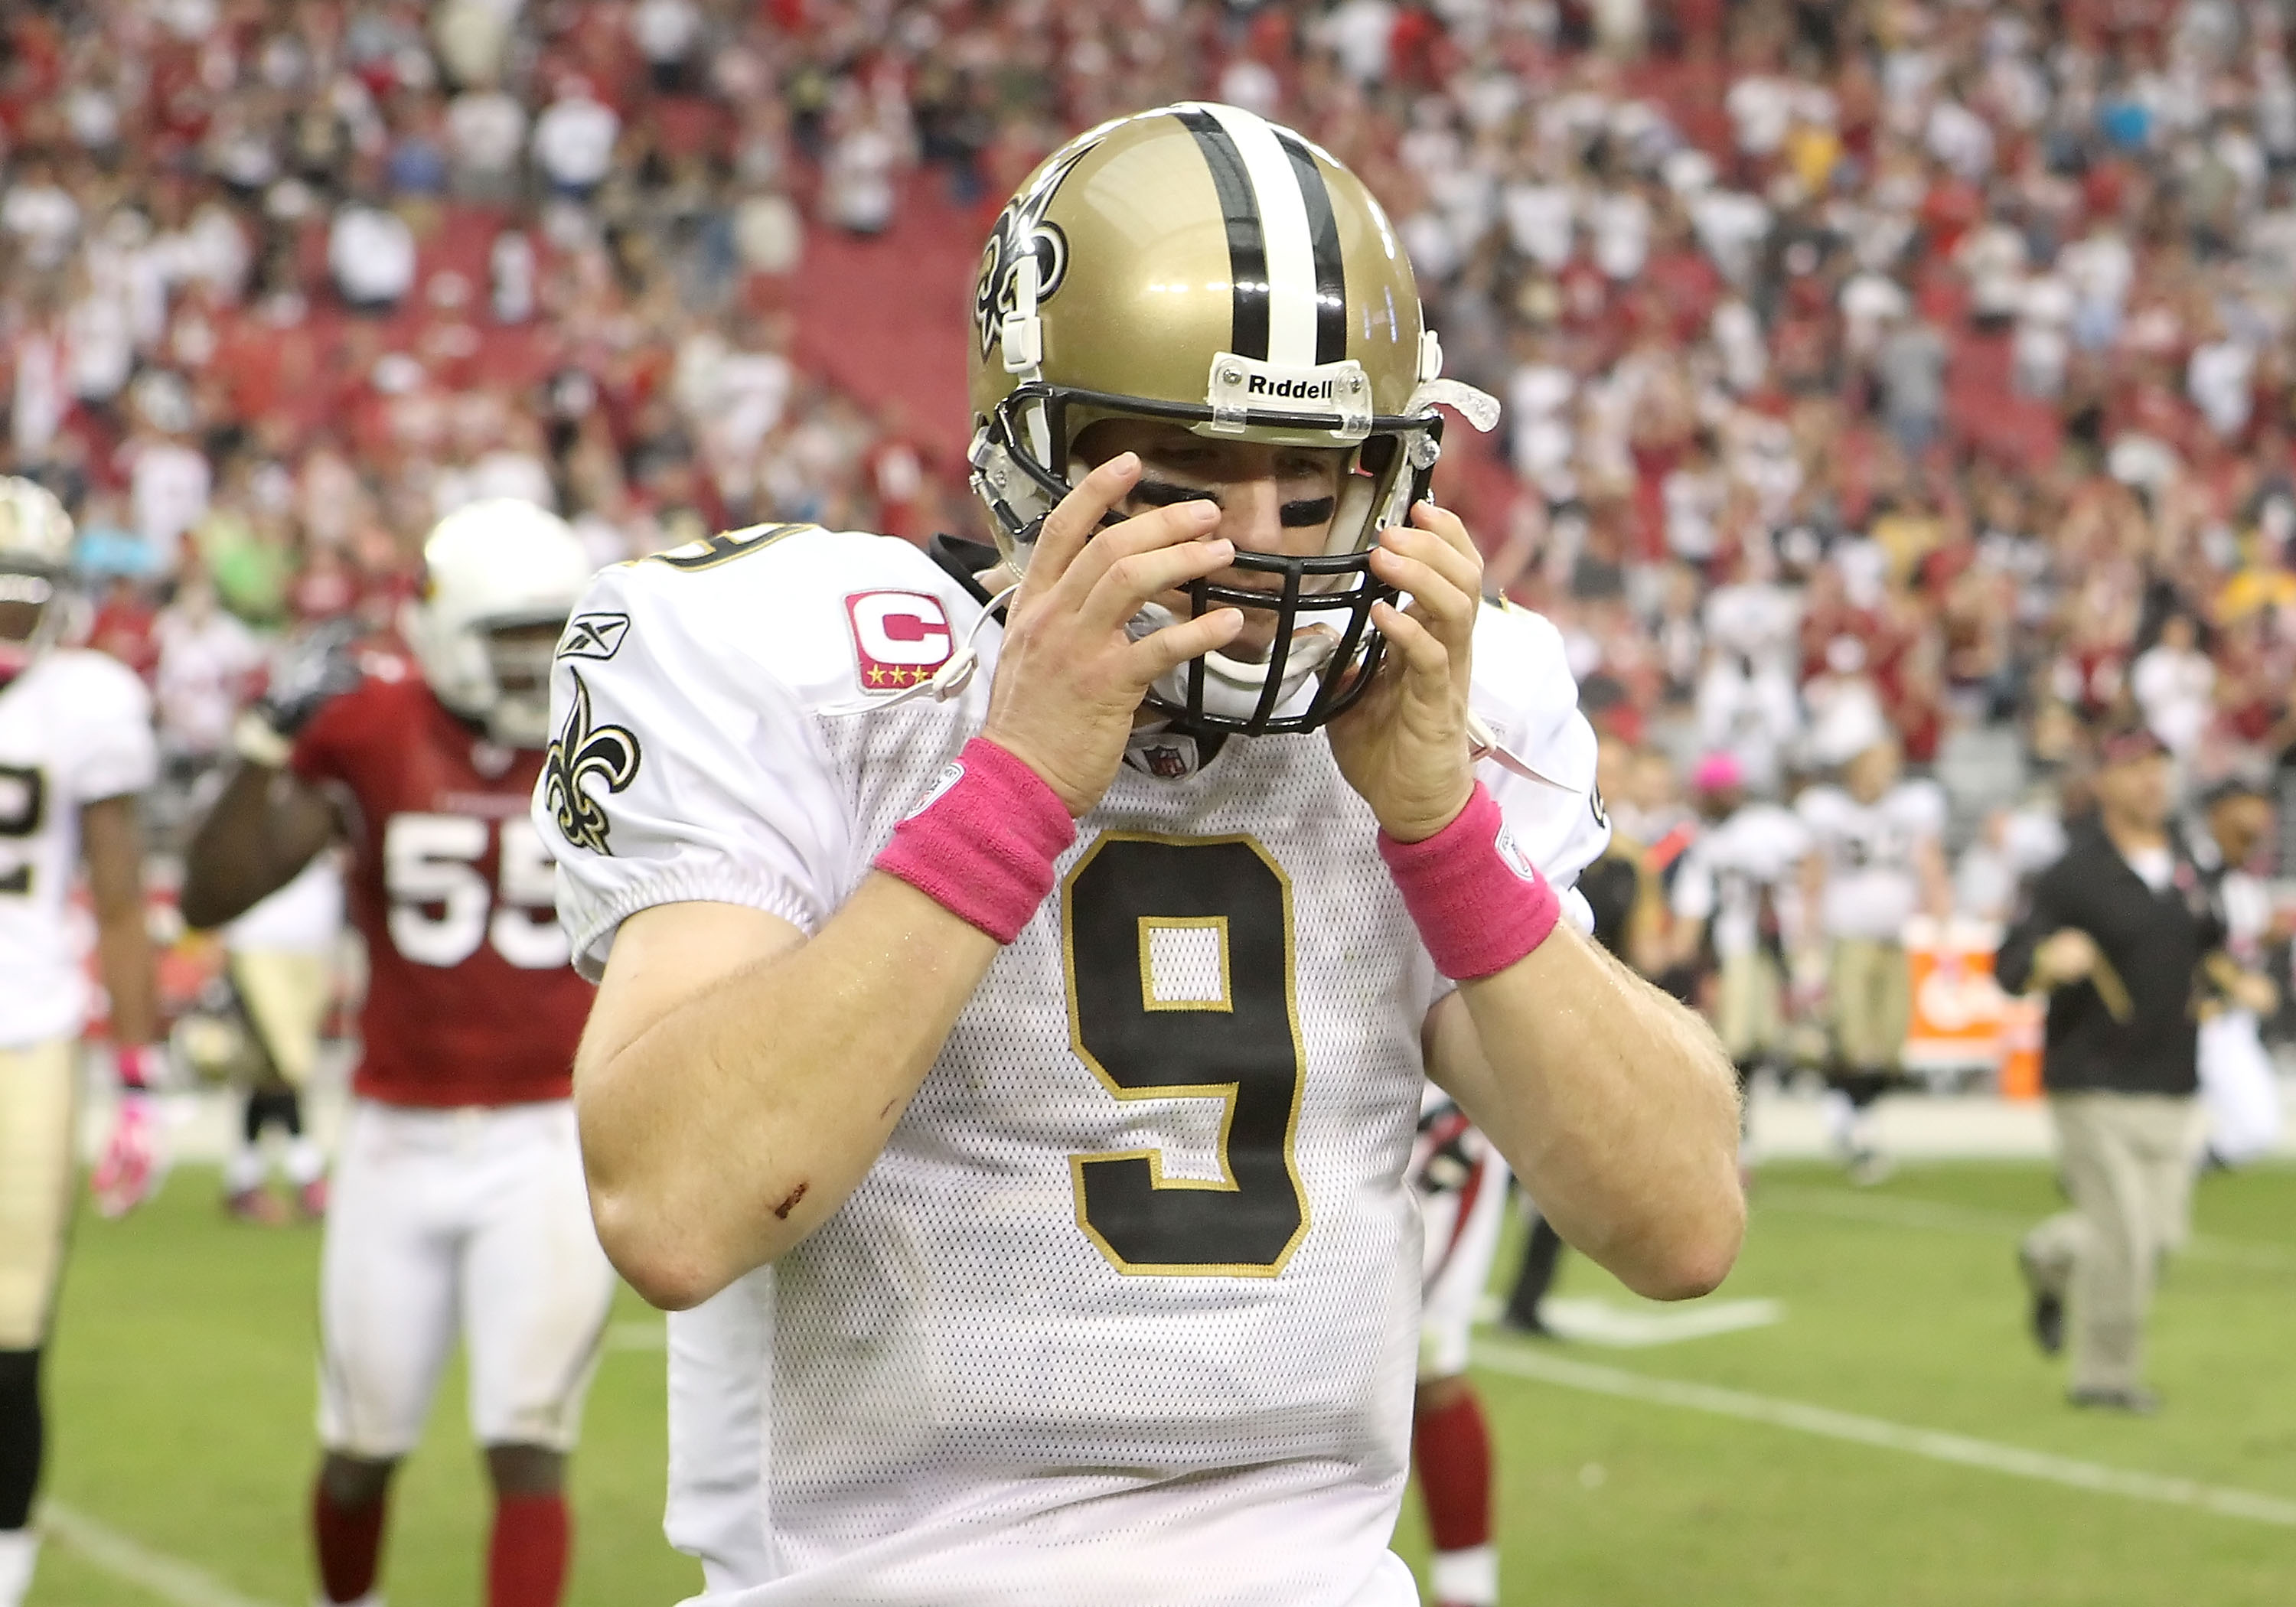 GLENDALE, AZ - OCTOBER 10:  Quarterback Drew Brees #9 of the New Orleans Saints reacts as he walks off the field after being defeated by the Arizona Cardinals in the NFL game at the University of Phoenix Stadium on October 10, 2010 in Glendale, Arizona. T